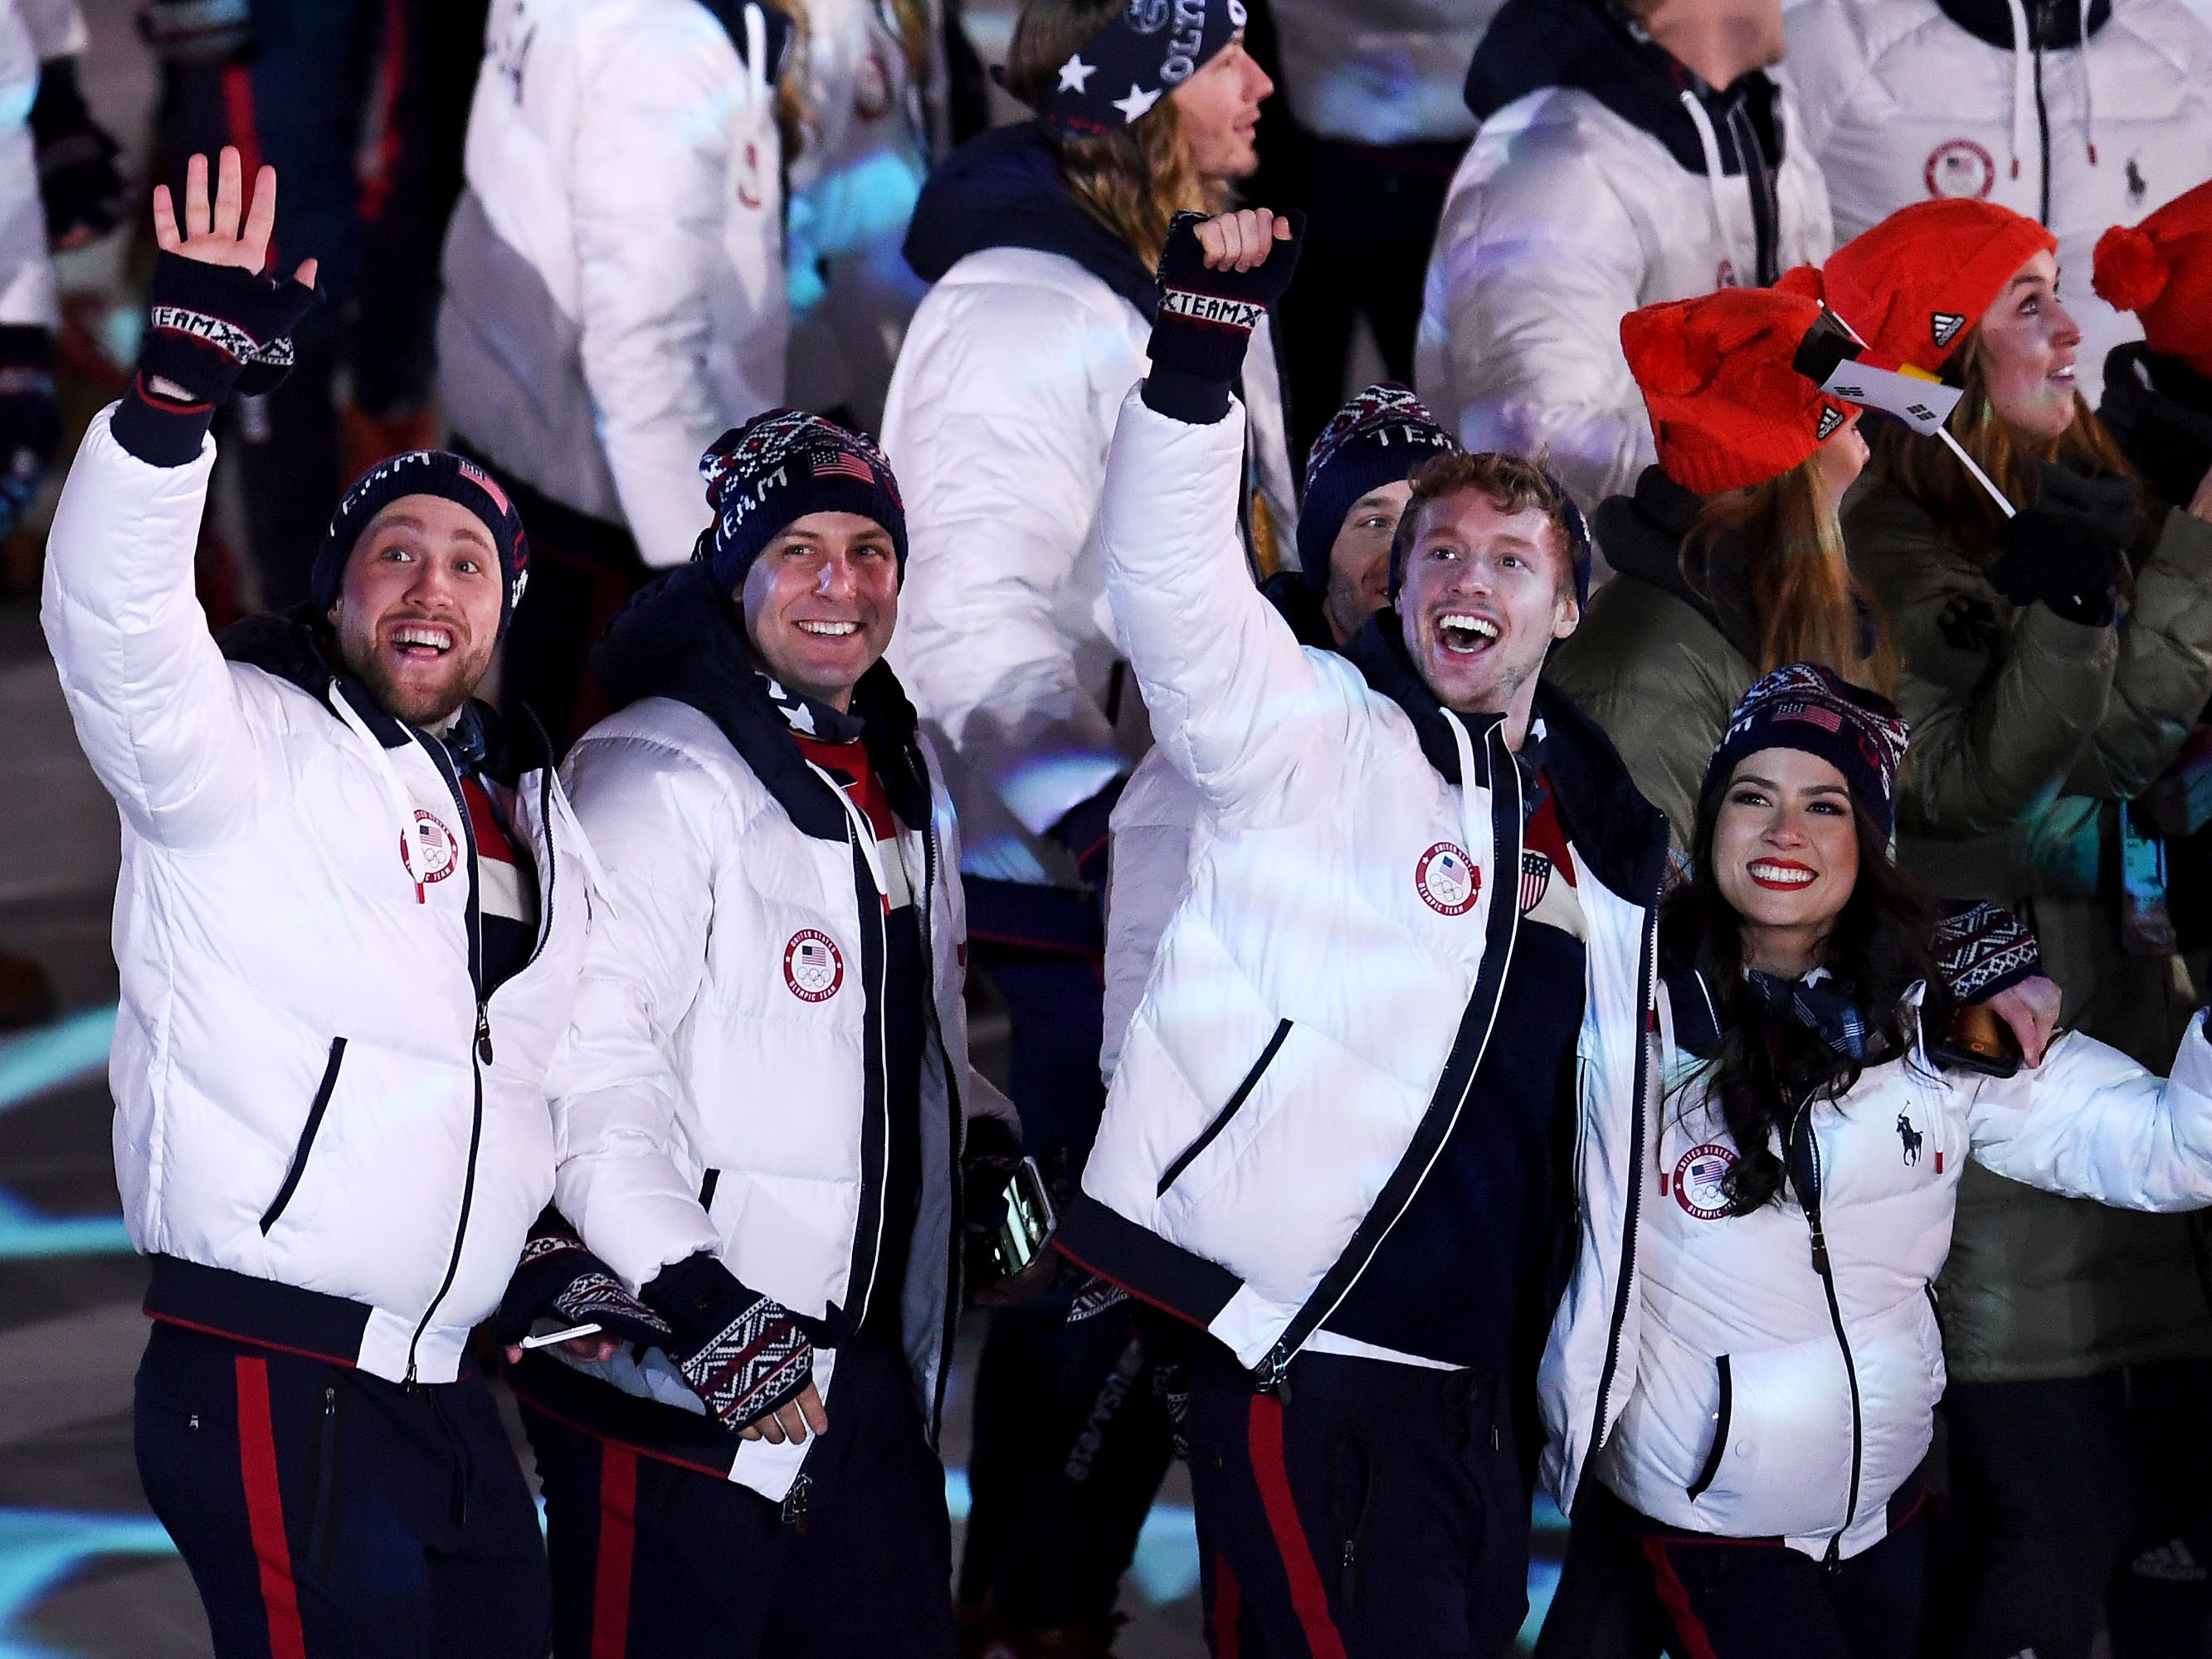 2018 Winter Olympic Games – Closing Ceremony